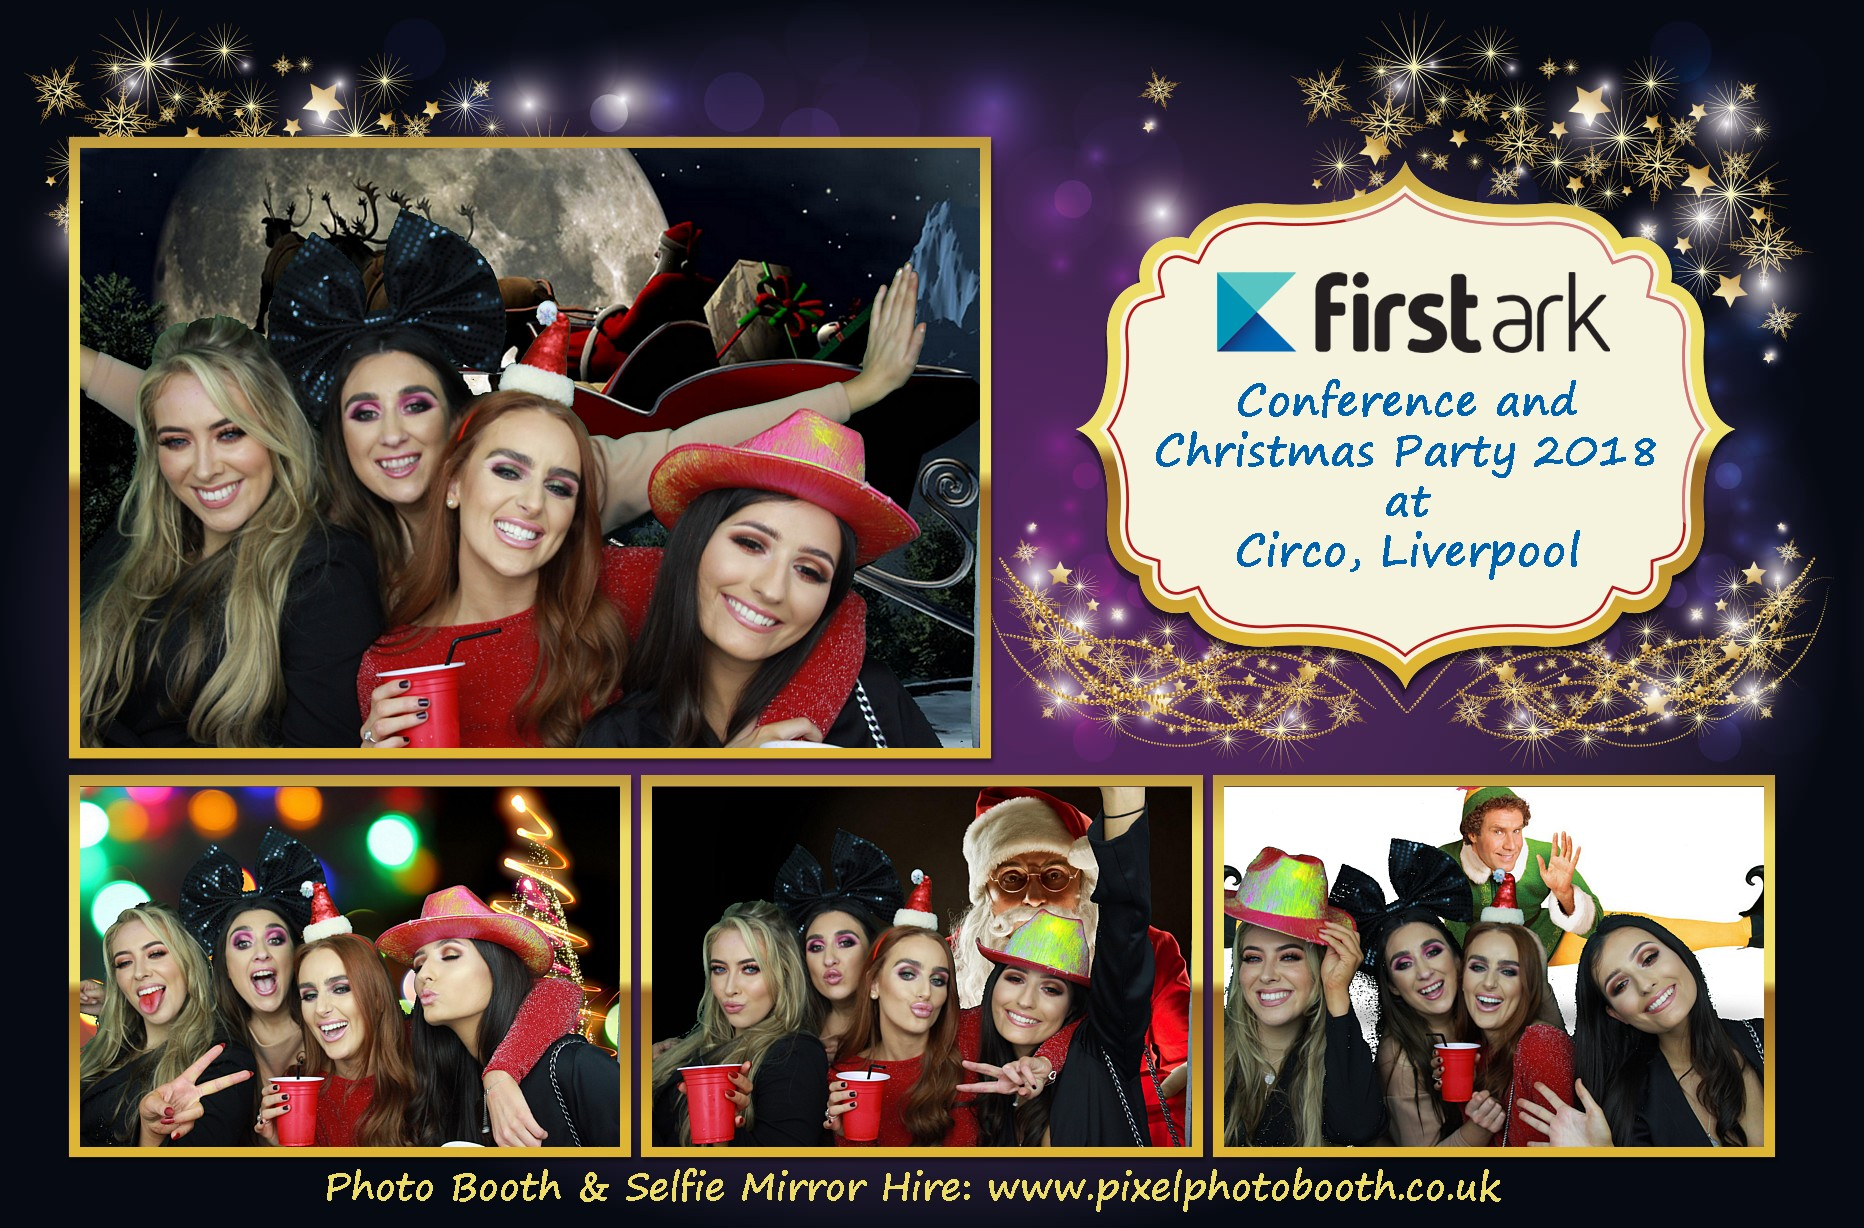 7th Dec 2018: First Ark Party and Conference at Titanic Hotel and Circo